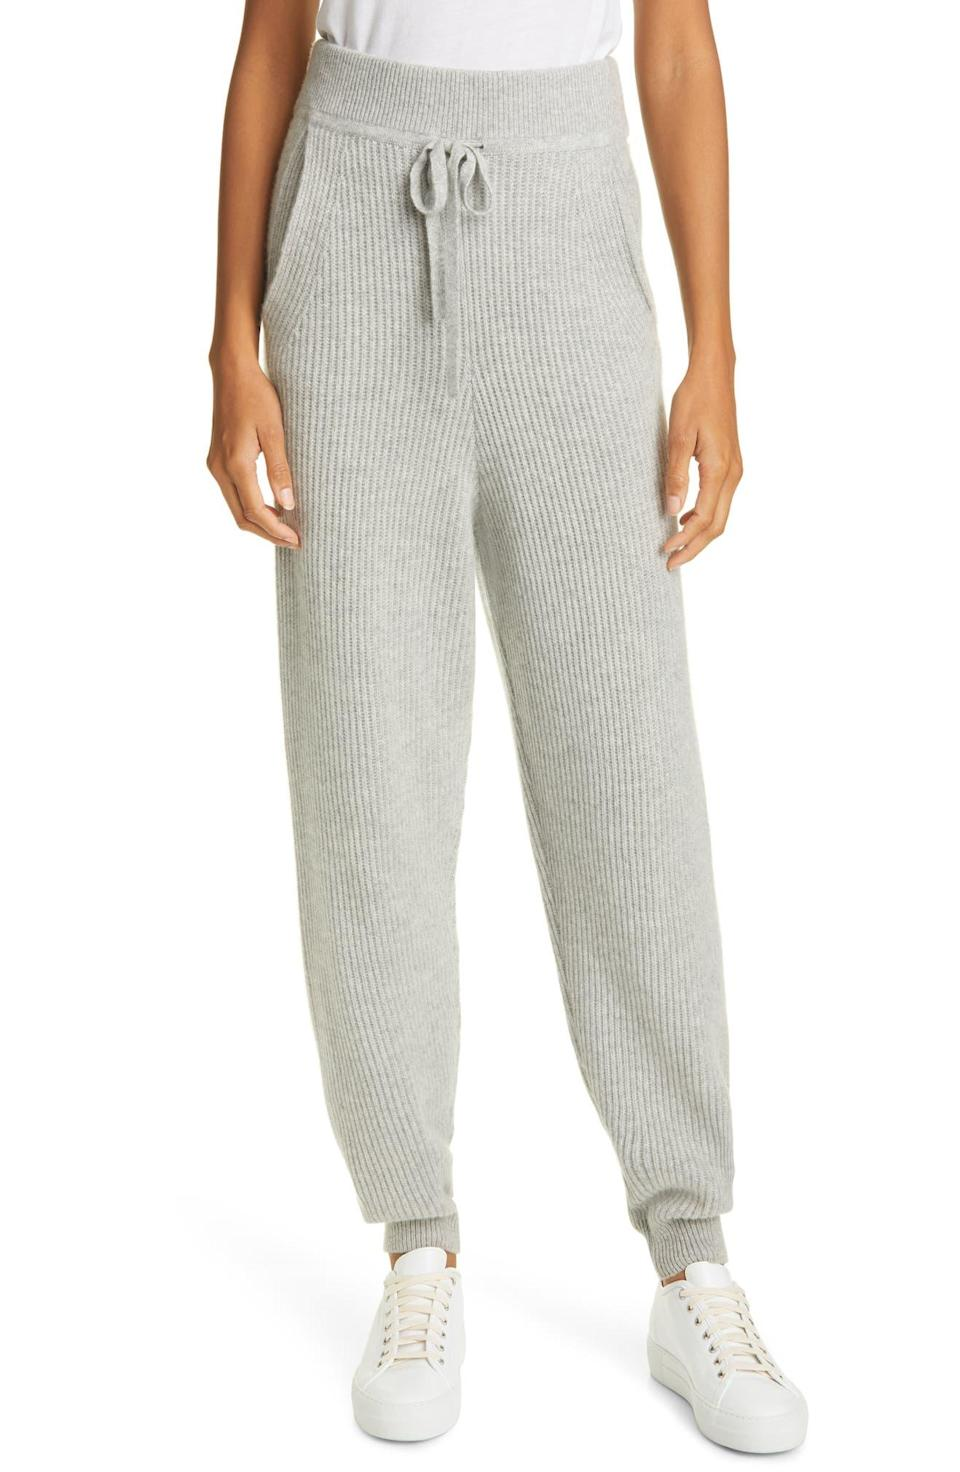 "<h2>Rag & Bone Pierce Tie Waist Cashmere Joggers</h2><br>These detail-rich sweatpants boast a host of finishes that make feel much more special than your average sweatpant, including an extra-wide waistband, slouchy leg, and loose ribbed knit for added texture.<br><br><strong>rag & bone</strong> Pierce Tie Waist Cashmere Joggers, $, available at <a href=""https://go.skimresources.com/?id=30283X879131&url=https%3A%2F%2Fwww.nordstrom.com%2Fs%2Frag-bone-pierce-tie-waist-cashmere-joggers%2F5765059"" rel=""nofollow noopener"" target=""_blank"" data-ylk=""slk:Nordstrom"" class=""link rapid-noclick-resp"">Nordstrom</a>"